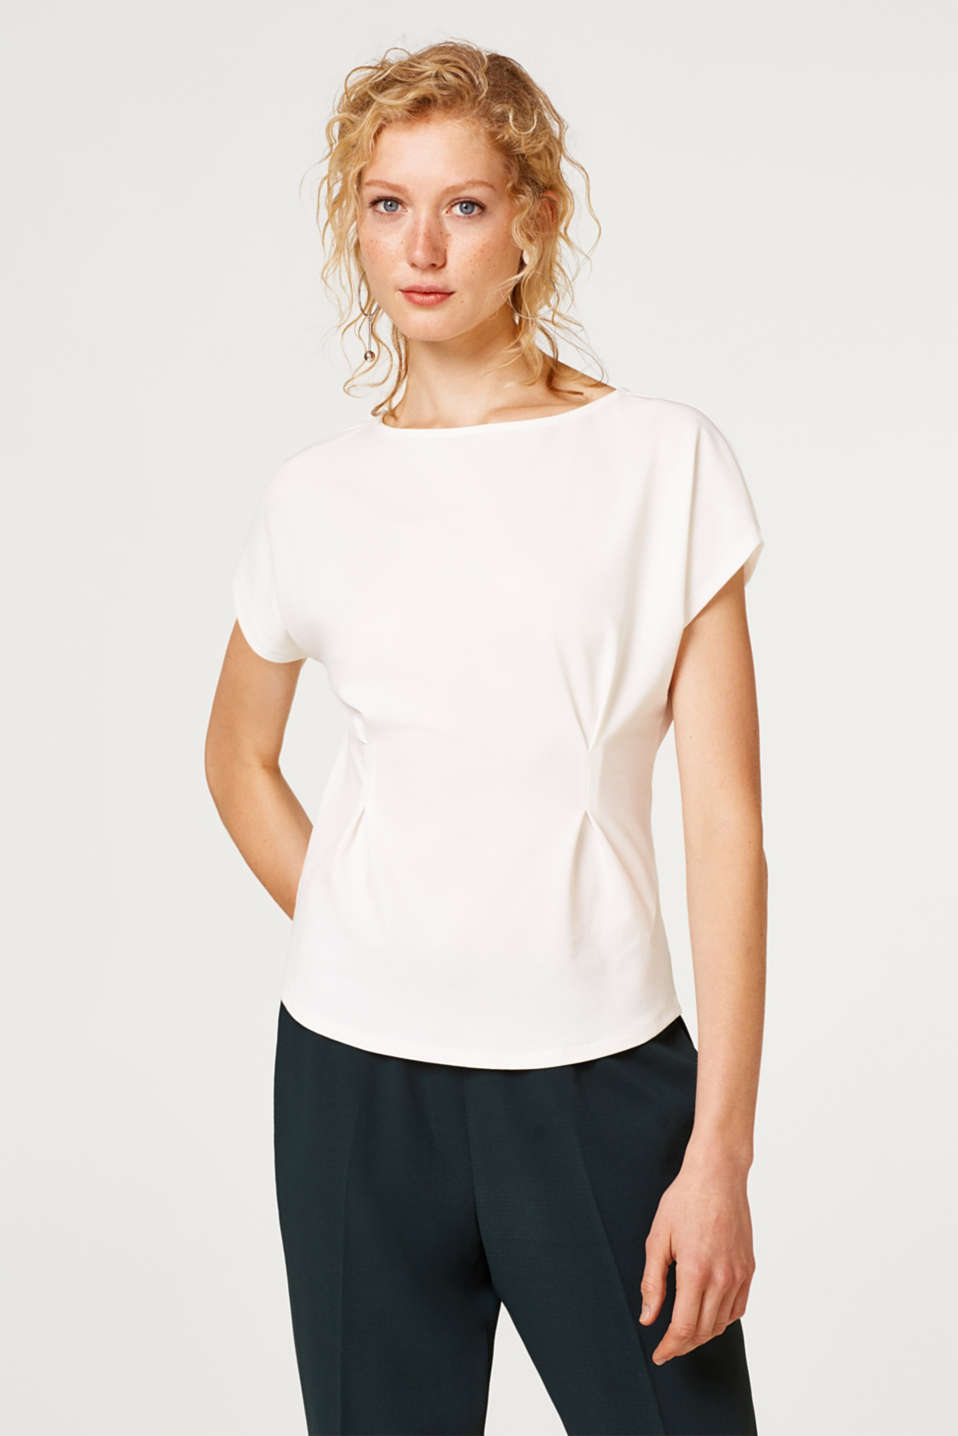 Esprit - T-shirt in crêpe jersey with decorative stitching